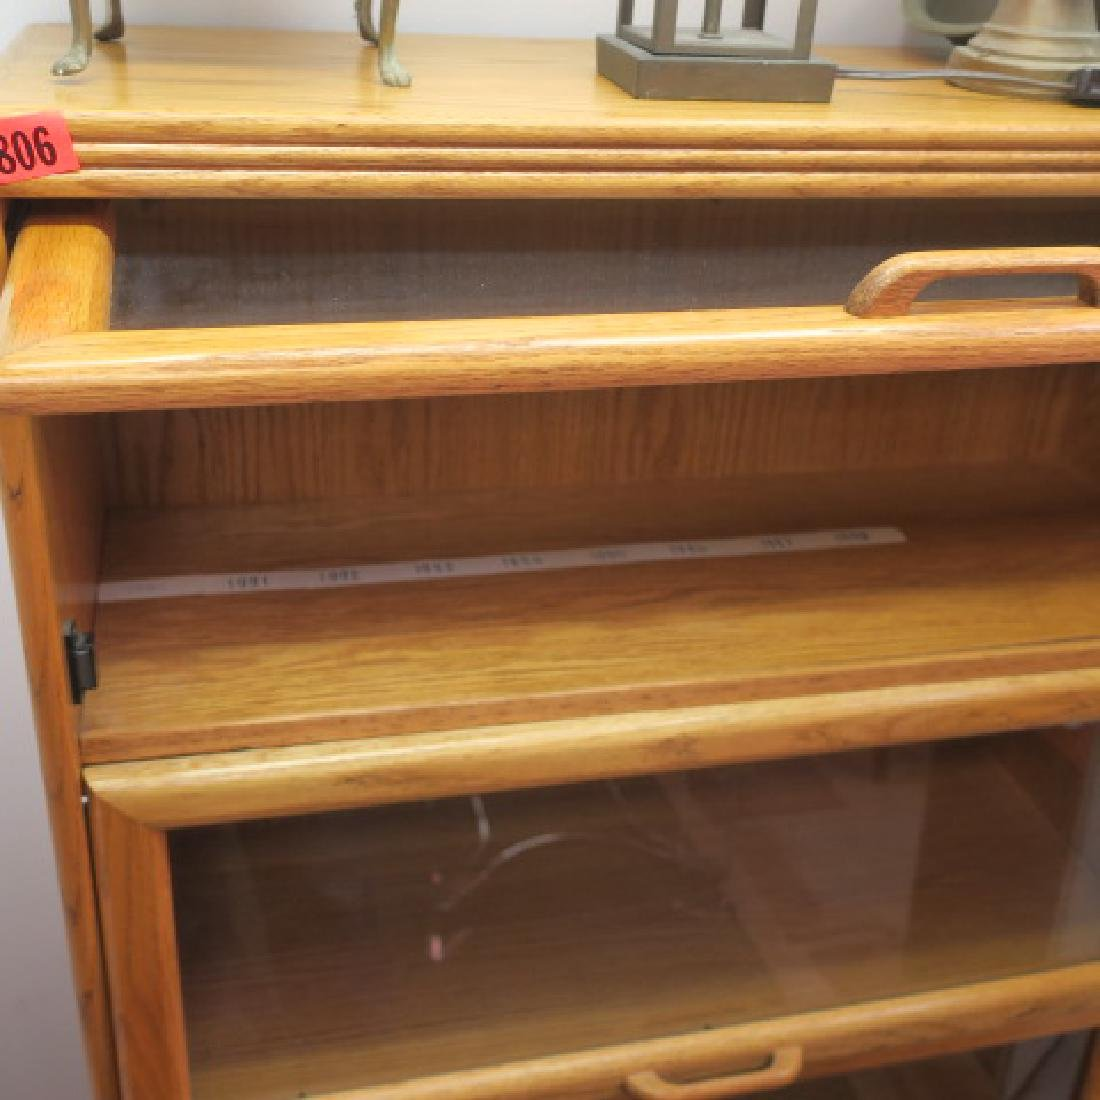 Barrister Style Four Shelf Bookcase: - 2